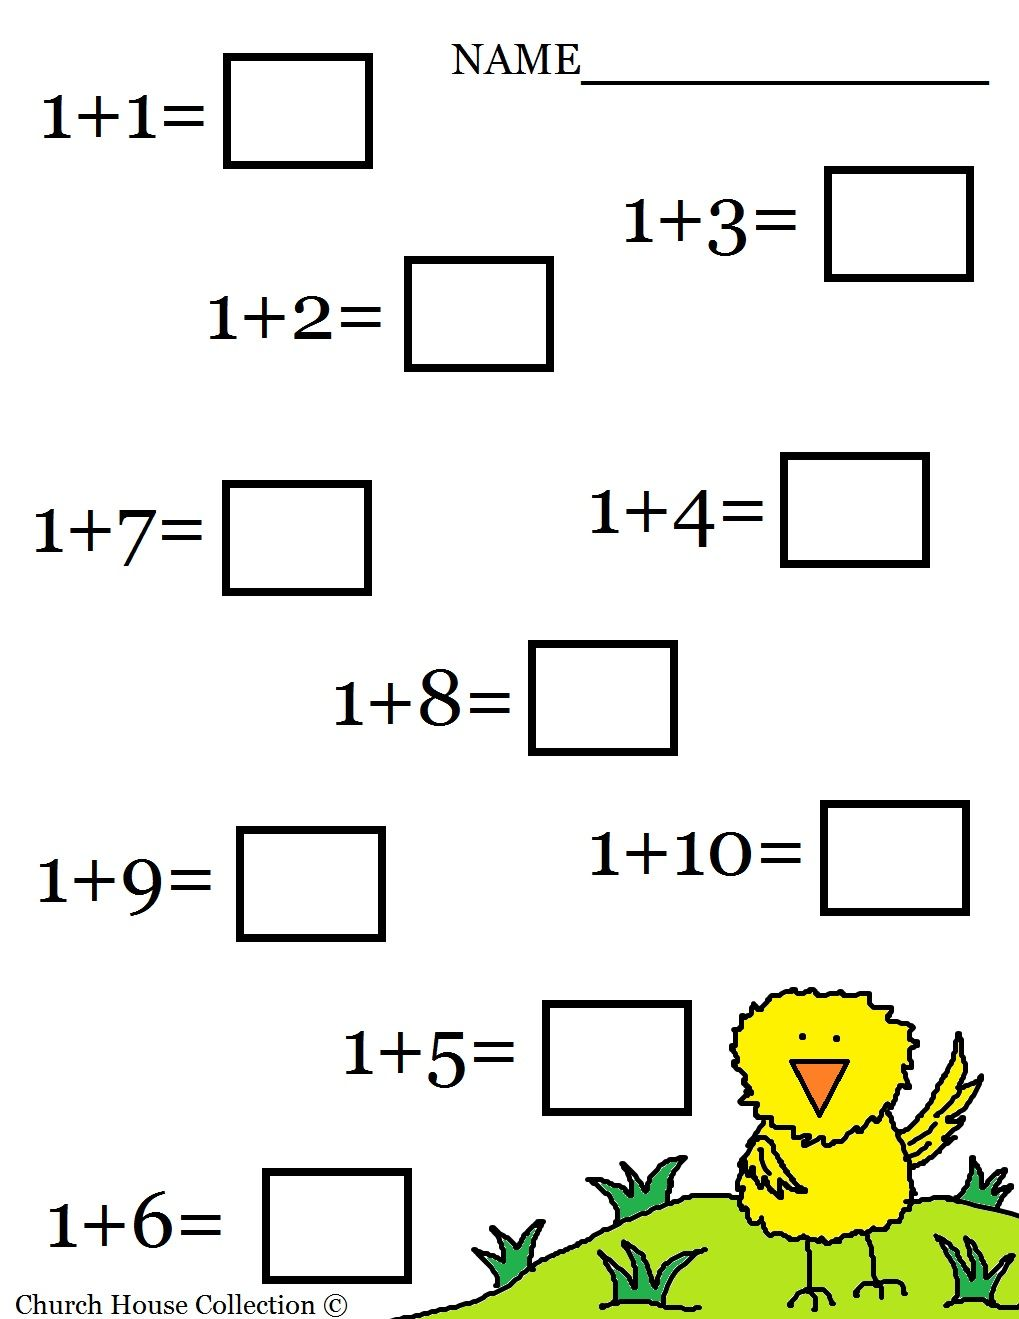 Aldiablosus  Splendid  Images About Worksheets  Math On Pinterest  Math Sheets  With Lovely  Images About Worksheets  Math On Pinterest  Math Sheets Math Worksheets For Kindergarten And Simple Addition With Amazing First Grade Graphing Worksheets Free Also A An The Worksheets For Kids In Addition Algebra Worksheets Year  And Synonyms Worksheet Grade  As Well As Times Tables Worksheets Year  Additionally Worksheets On Venn Diagrams From Pinterestcom With Aldiablosus  Lovely  Images About Worksheets  Math On Pinterest  Math Sheets  With Amazing  Images About Worksheets  Math On Pinterest  Math Sheets Math Worksheets For Kindergarten And Simple Addition And Splendid First Grade Graphing Worksheets Free Also A An The Worksheets For Kids In Addition Algebra Worksheets Year  From Pinterestcom